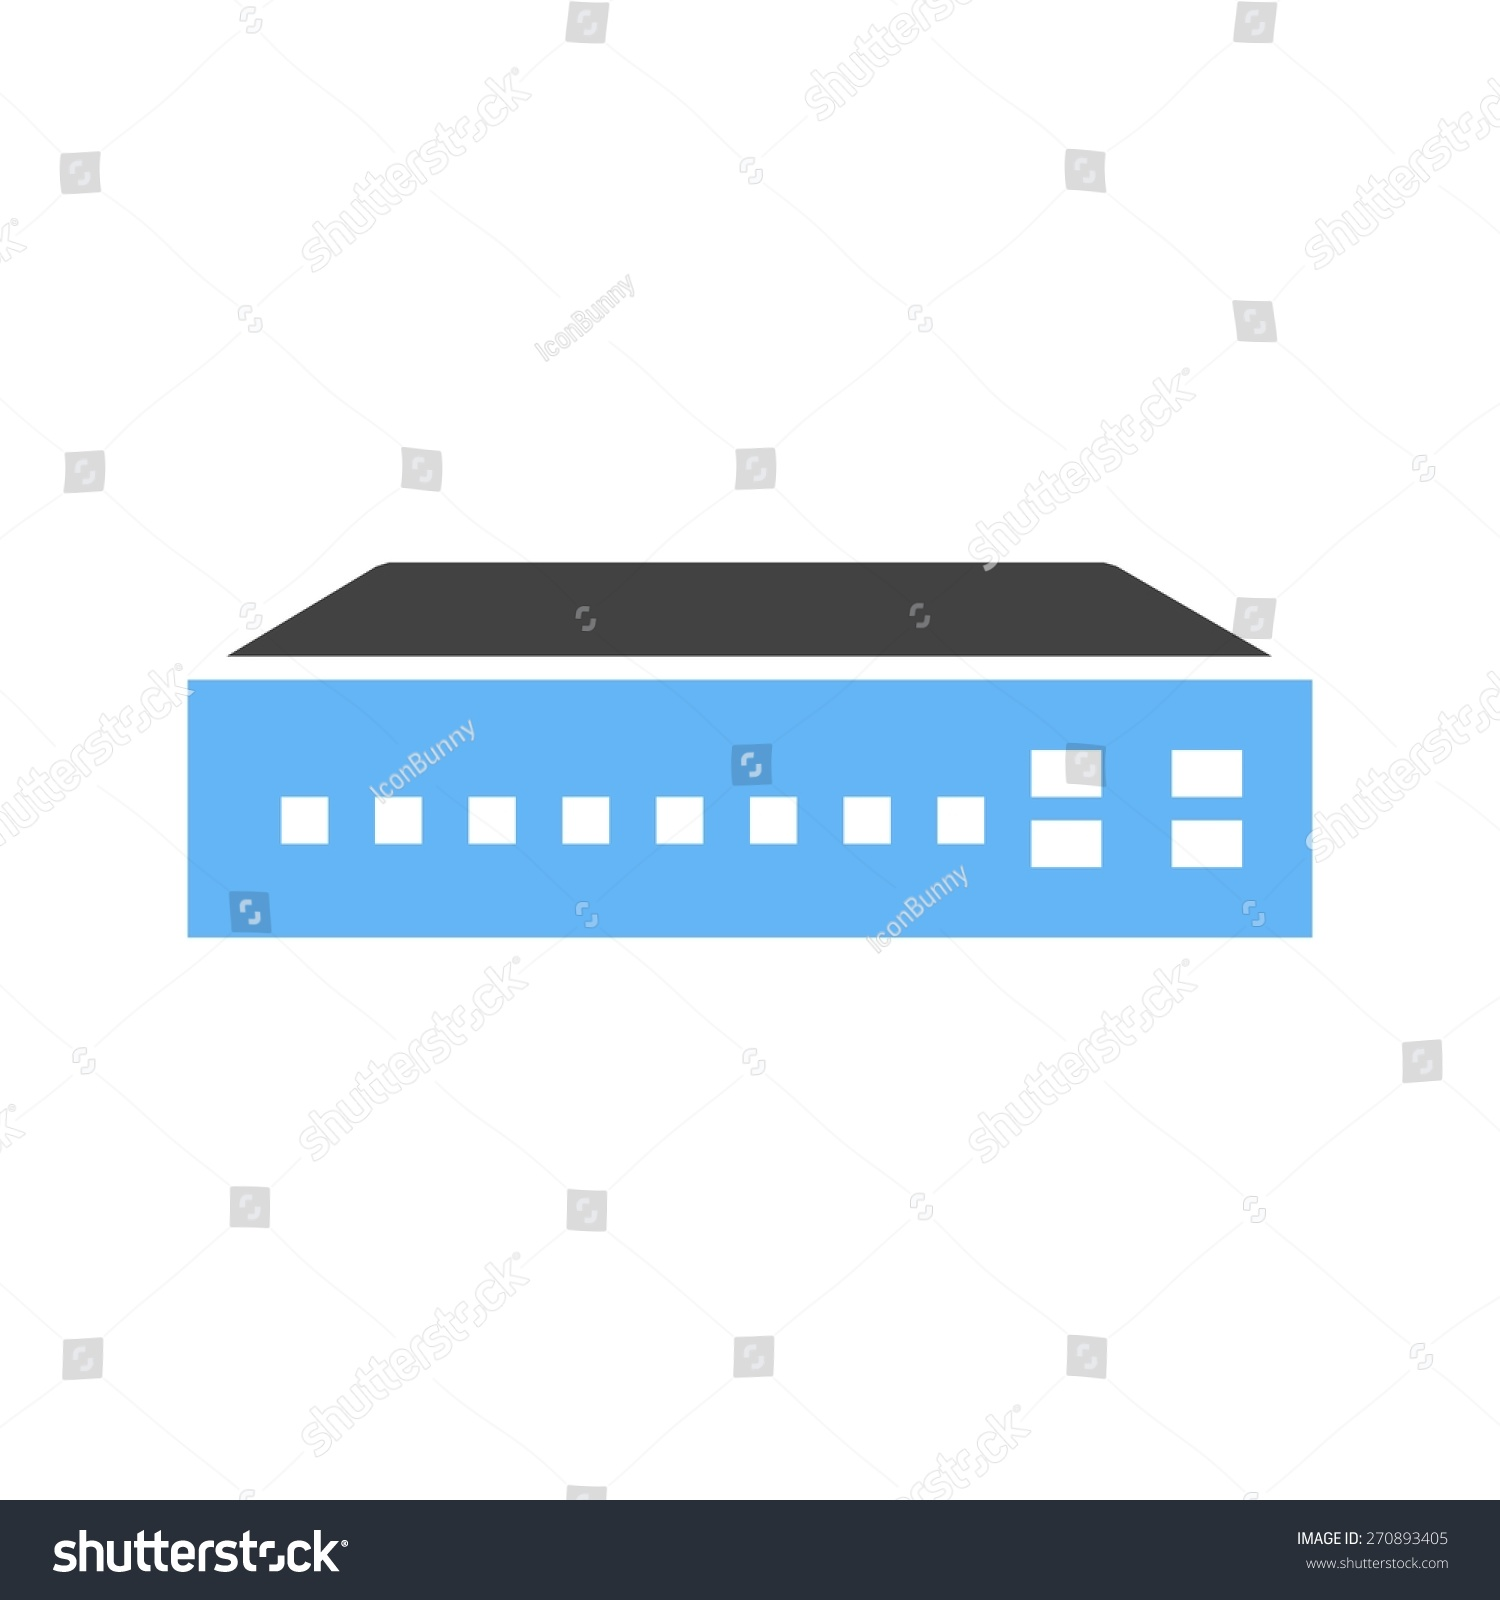 Networking Switch Network Router Icon Vector Stock Vector (2018 ...